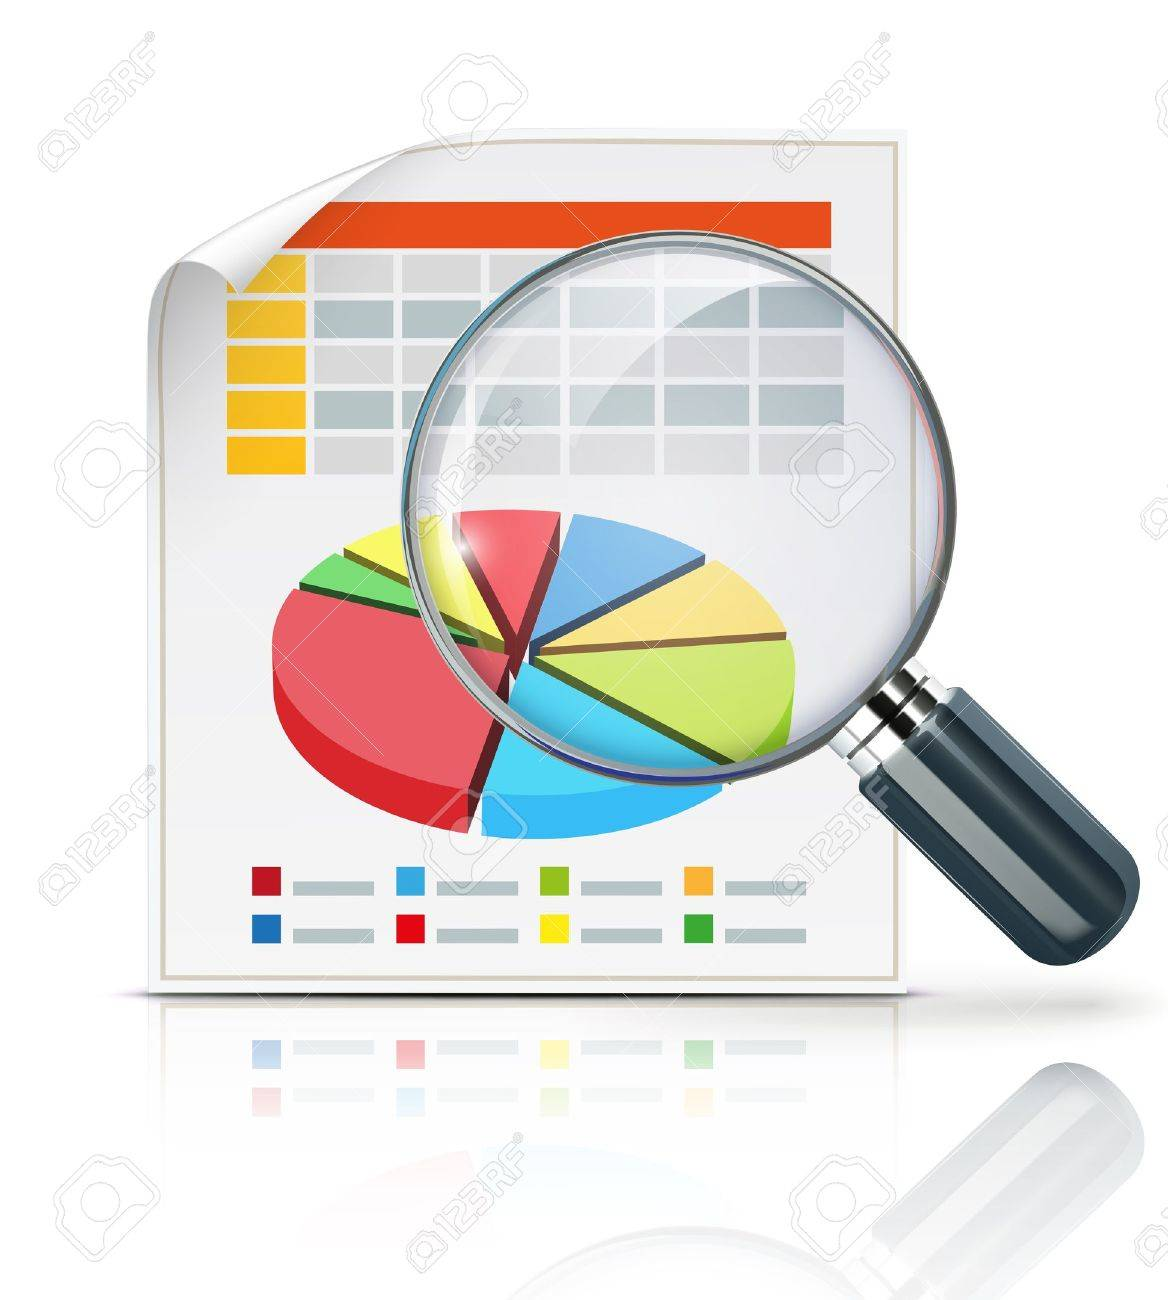 illustration of business concept with finance graphs and magnifying glass - 20464441